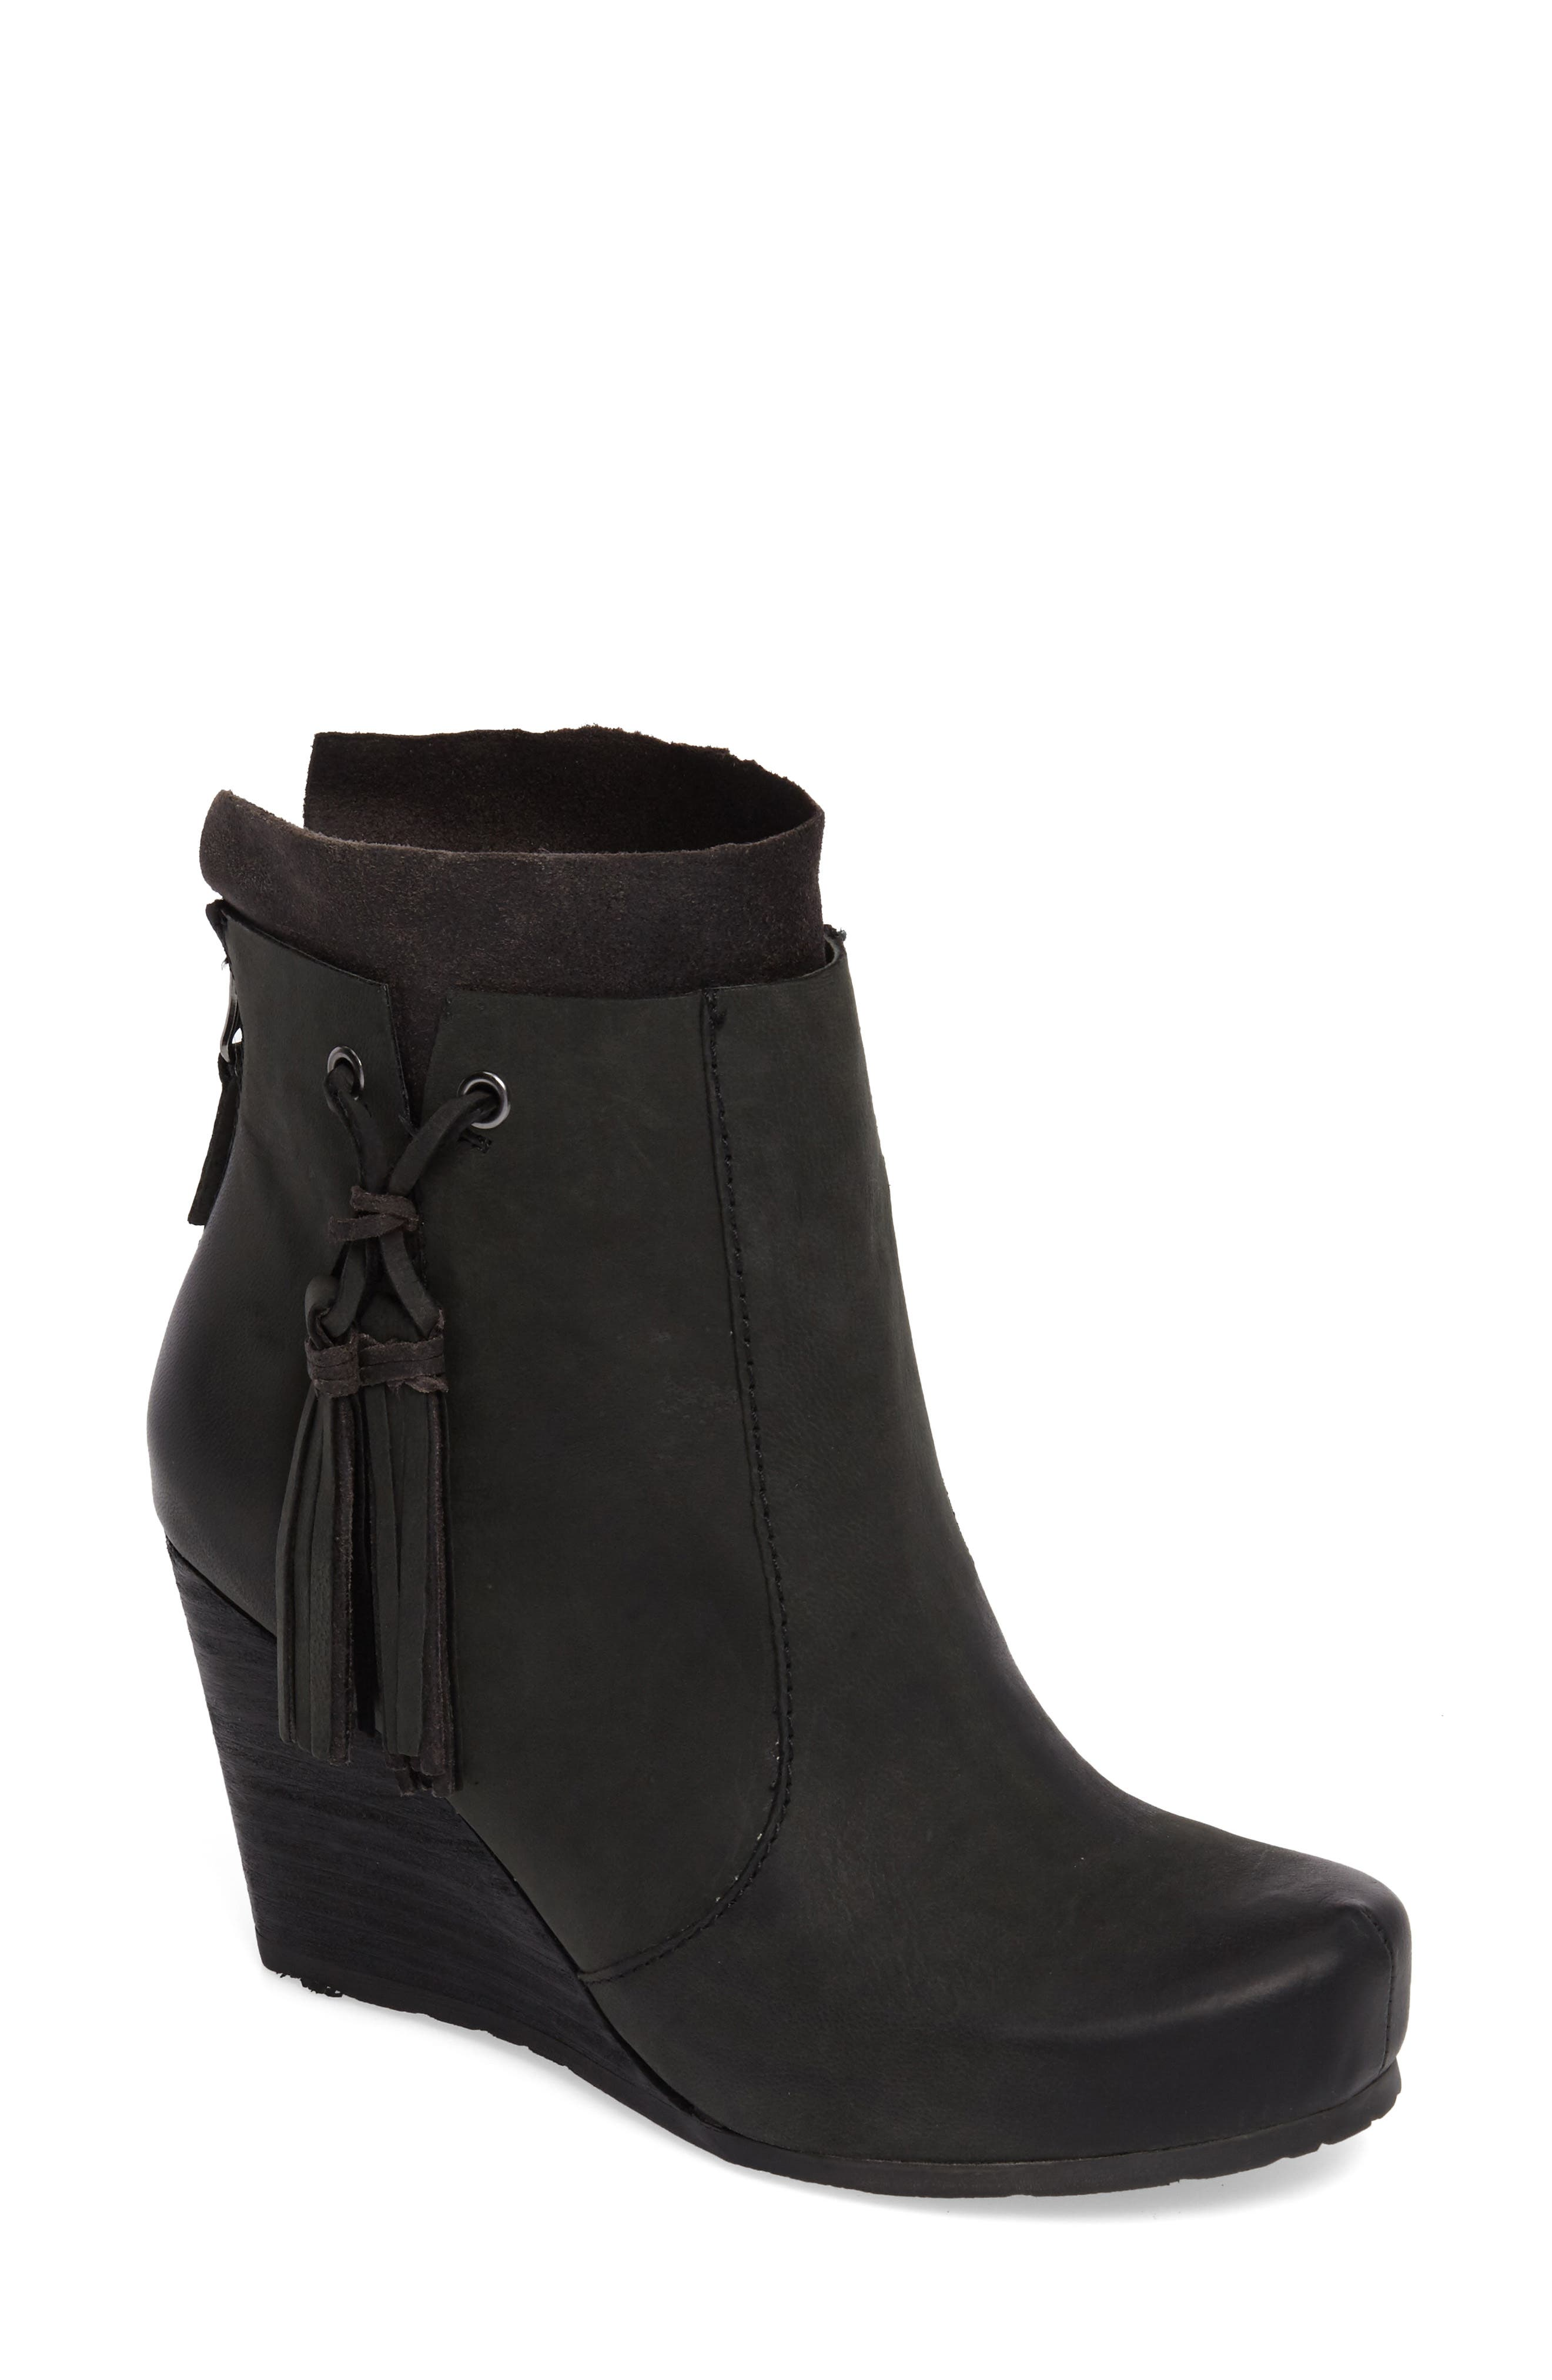 Main Image - OTBT Vagary Wedge Bootie (Women)